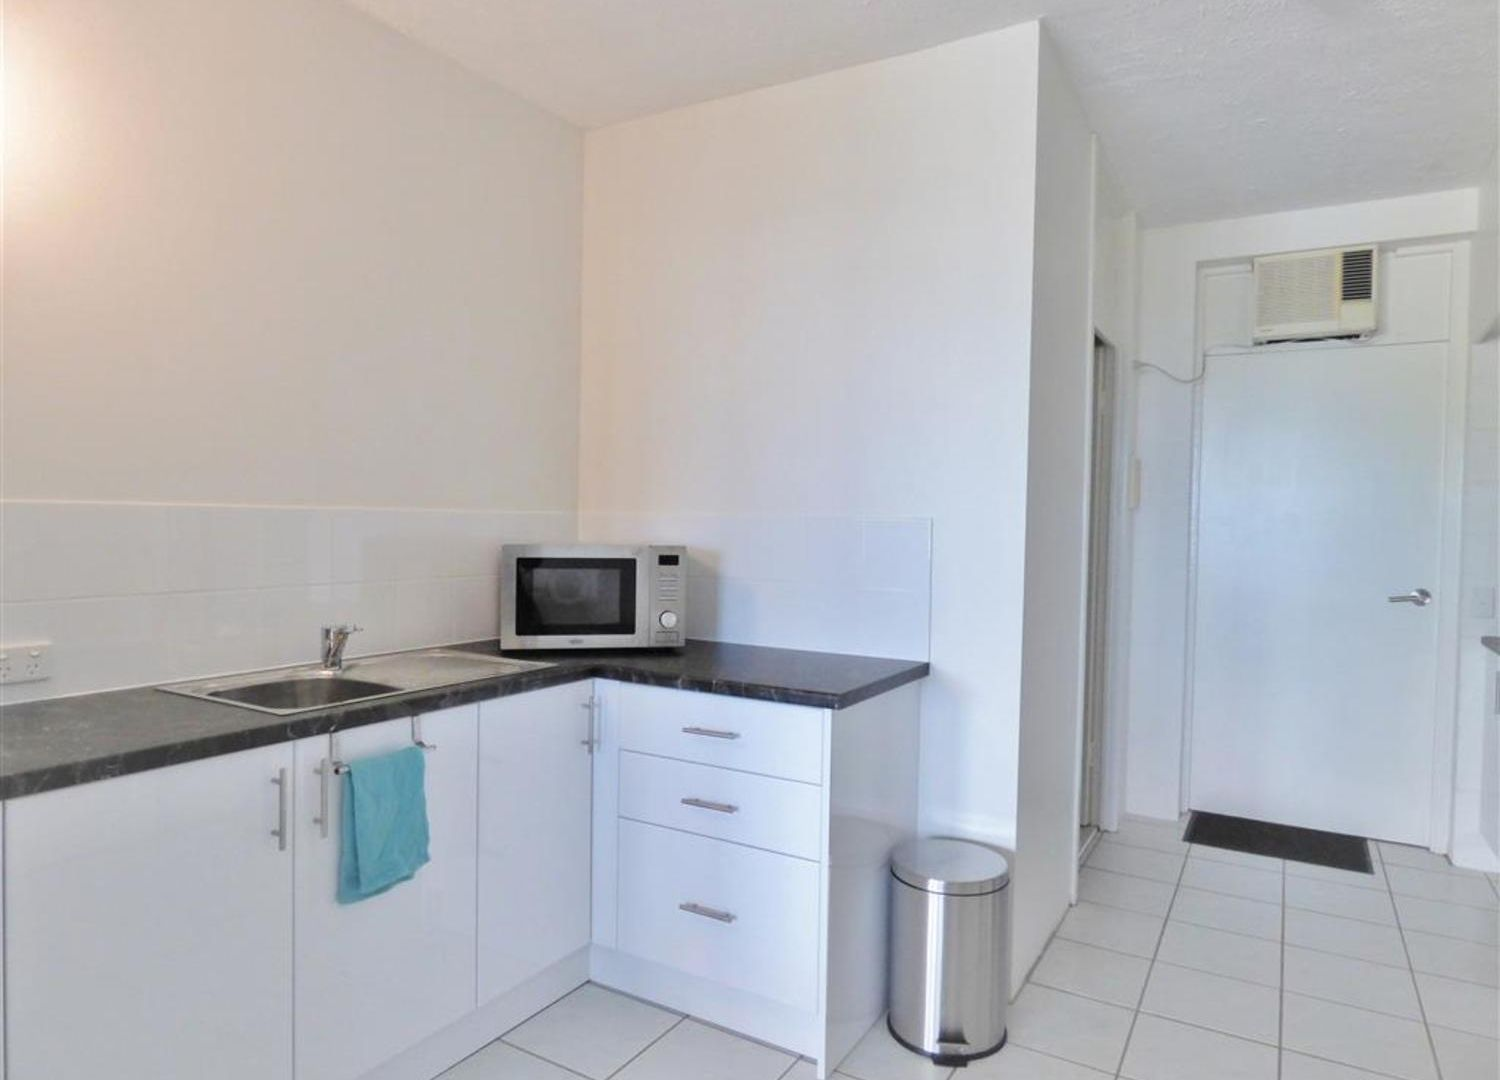 46A/5 Golden Orchid Drive, Airlie Beach QLD 4802, Image 2